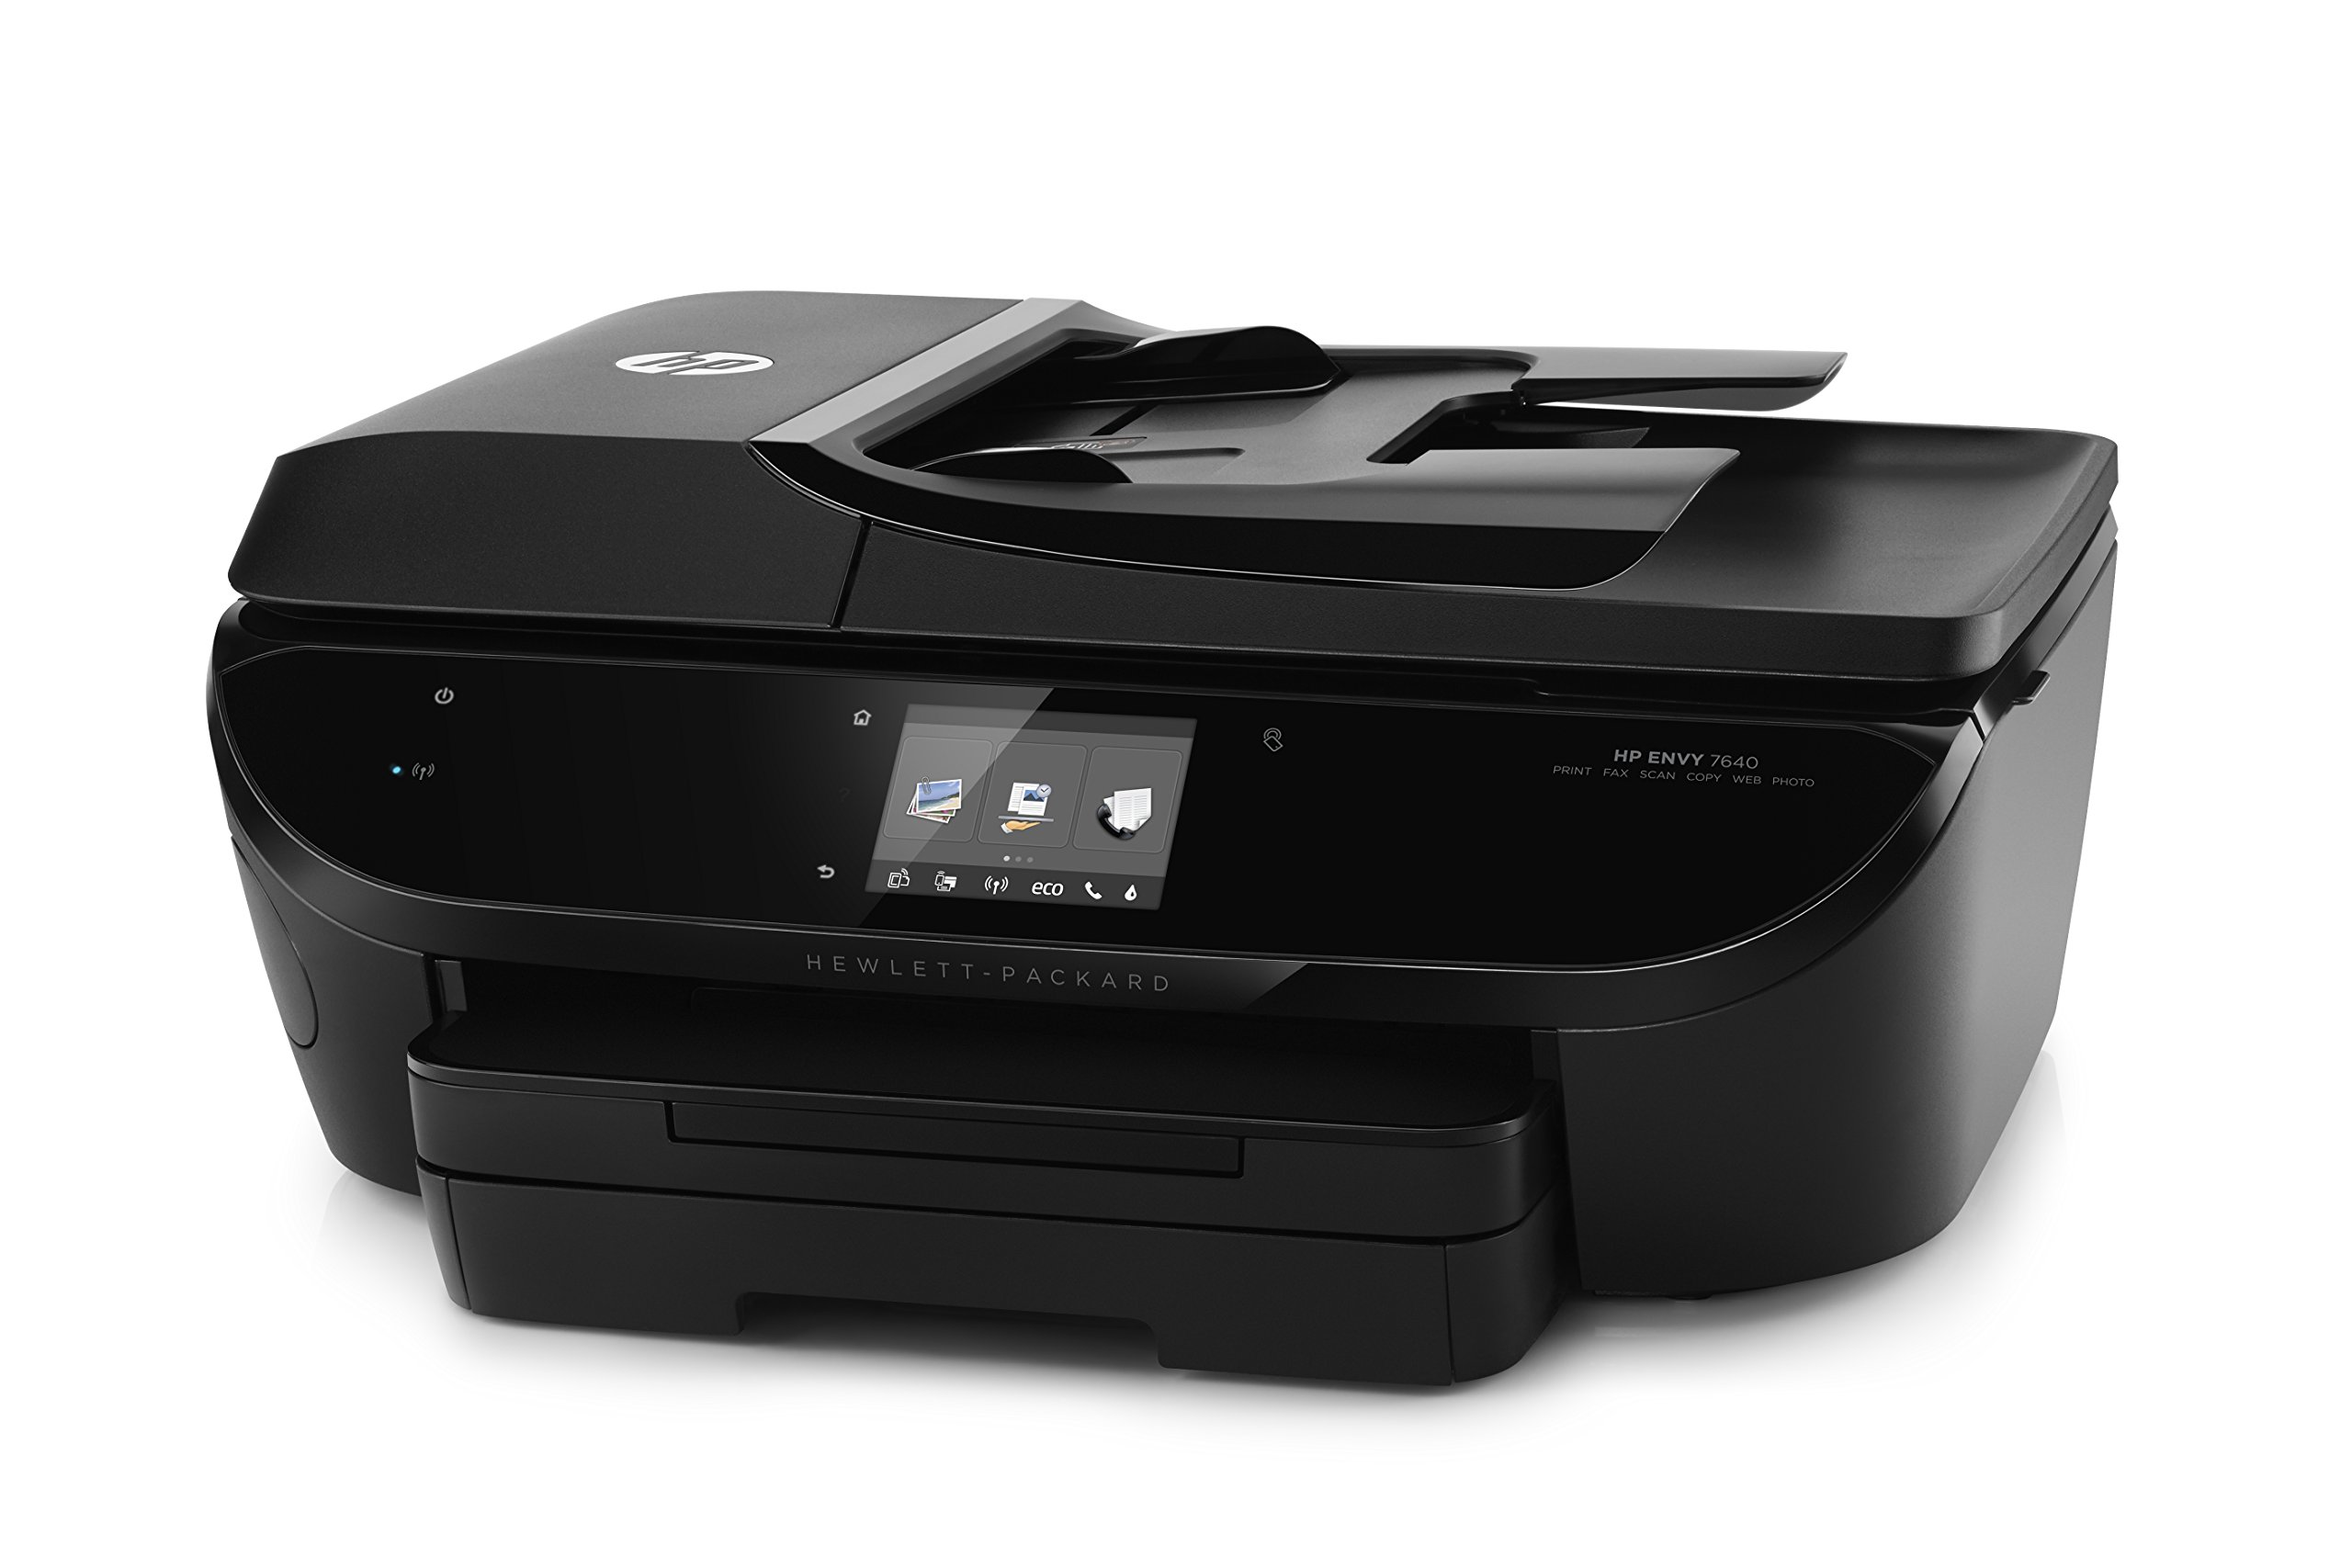 HP Envy 7640 Wireless All-in-One Photo Printer with Mobile Printing, Instant Ink ready (E4W43A) by HP (Image #2)